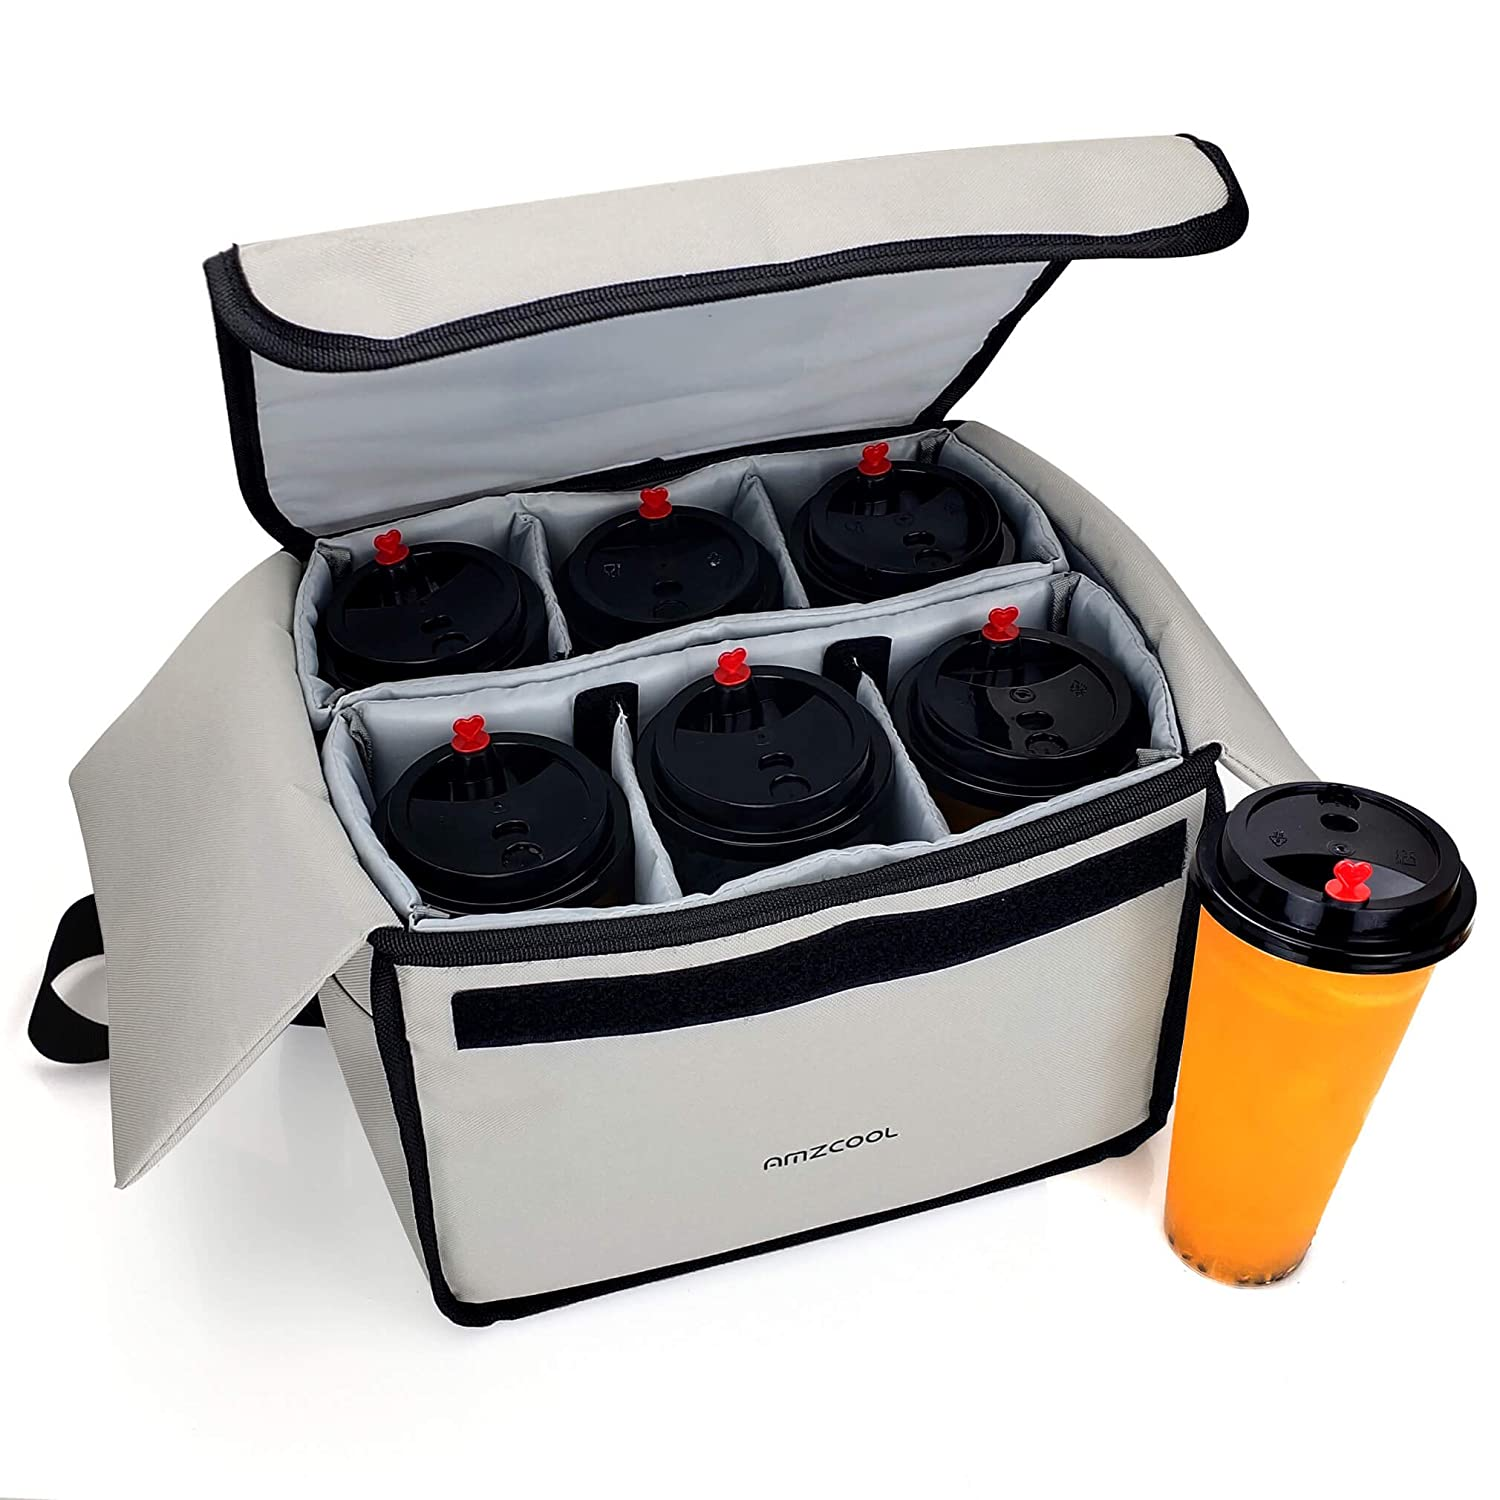 Insulated Drink Carrier for Drink Holder and Food Carrier Delivery Keep Your Drink Cold and Food Hot, Reusable Drink Caddy Bag, Cup Carrier Tote Bag with Dividers Clear Pocket Storage Bag